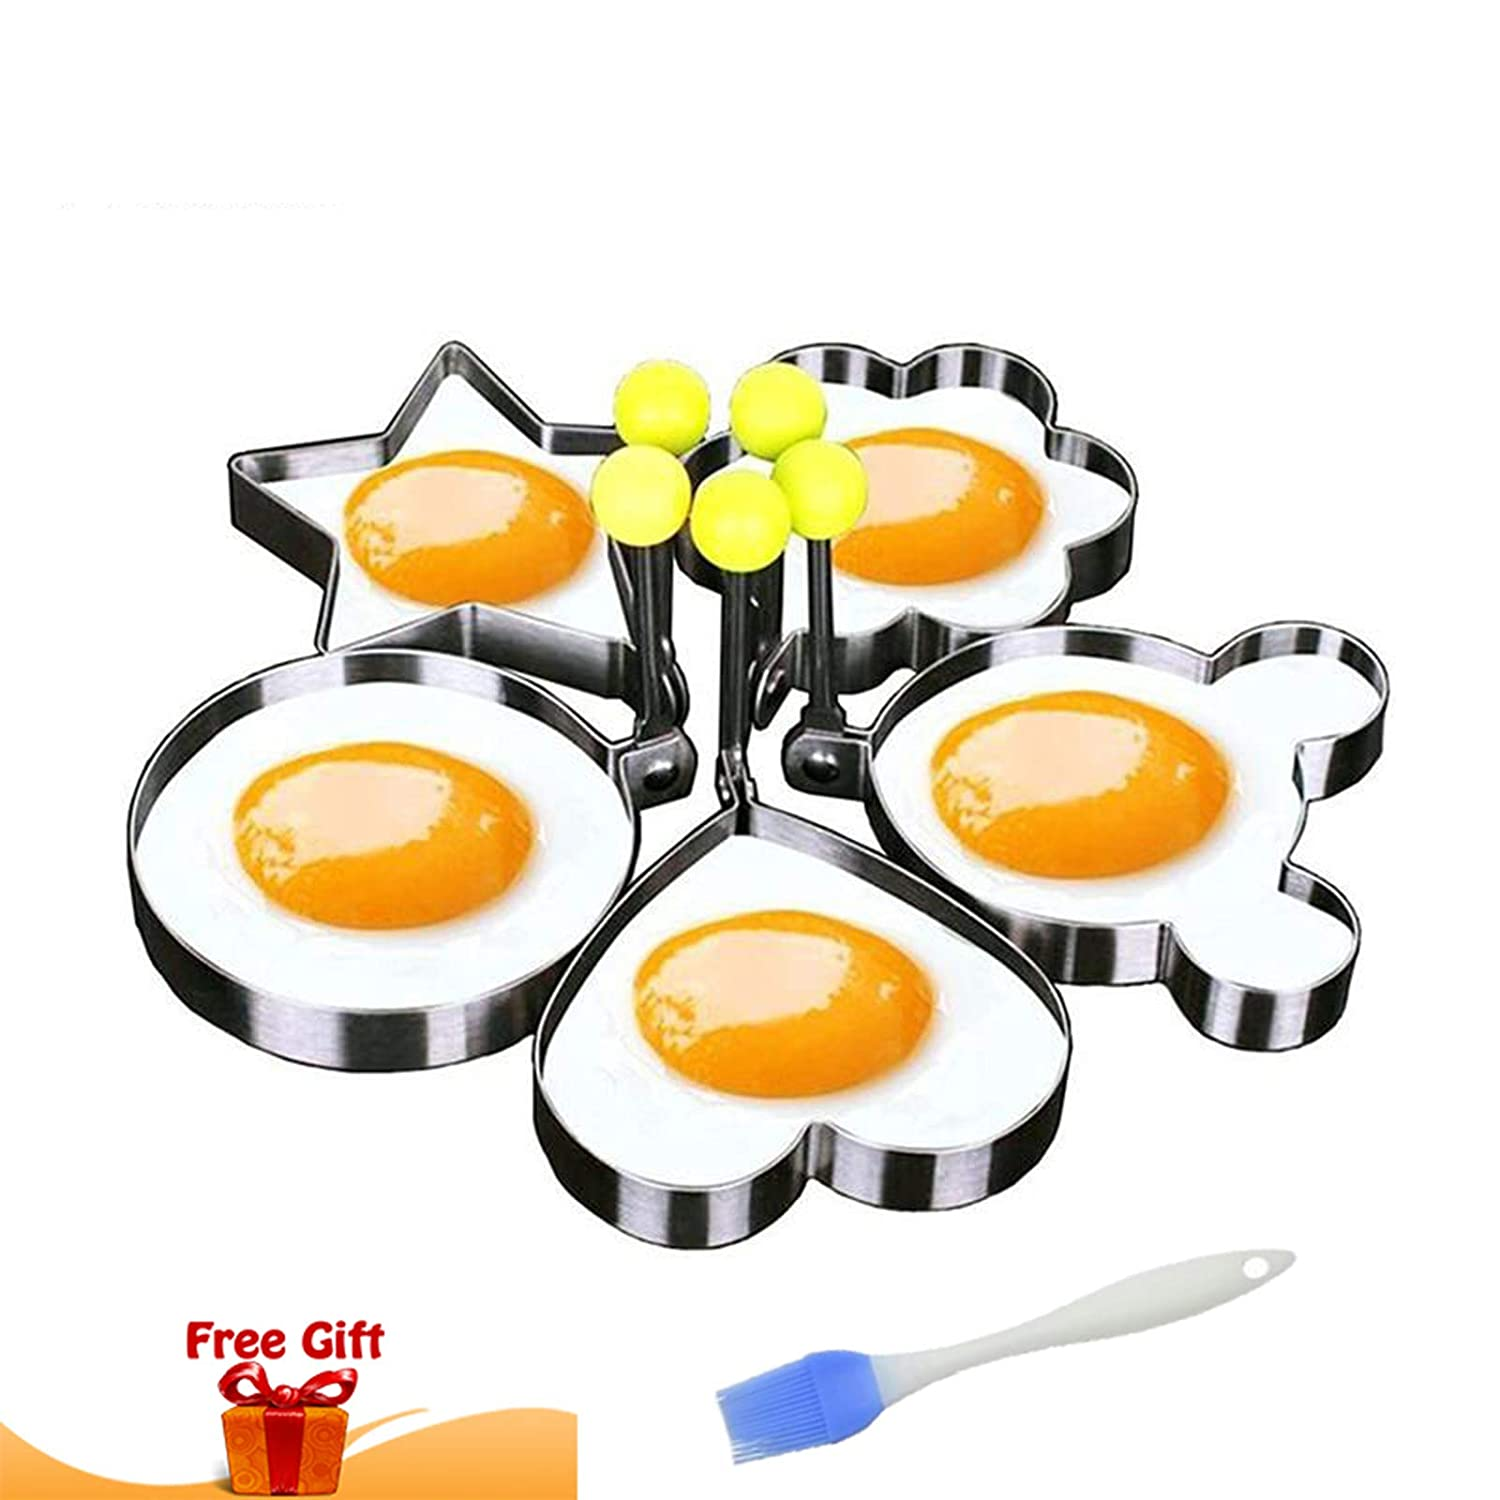 Fried Egg Ring Mold Pancake Cooker - Breakfast Sandwich Perfect for frying fun egg shaper Non stick Stainless Steel 5PCS set within a FREE GIFT Silicone Pastry Brush dealsinthejungle